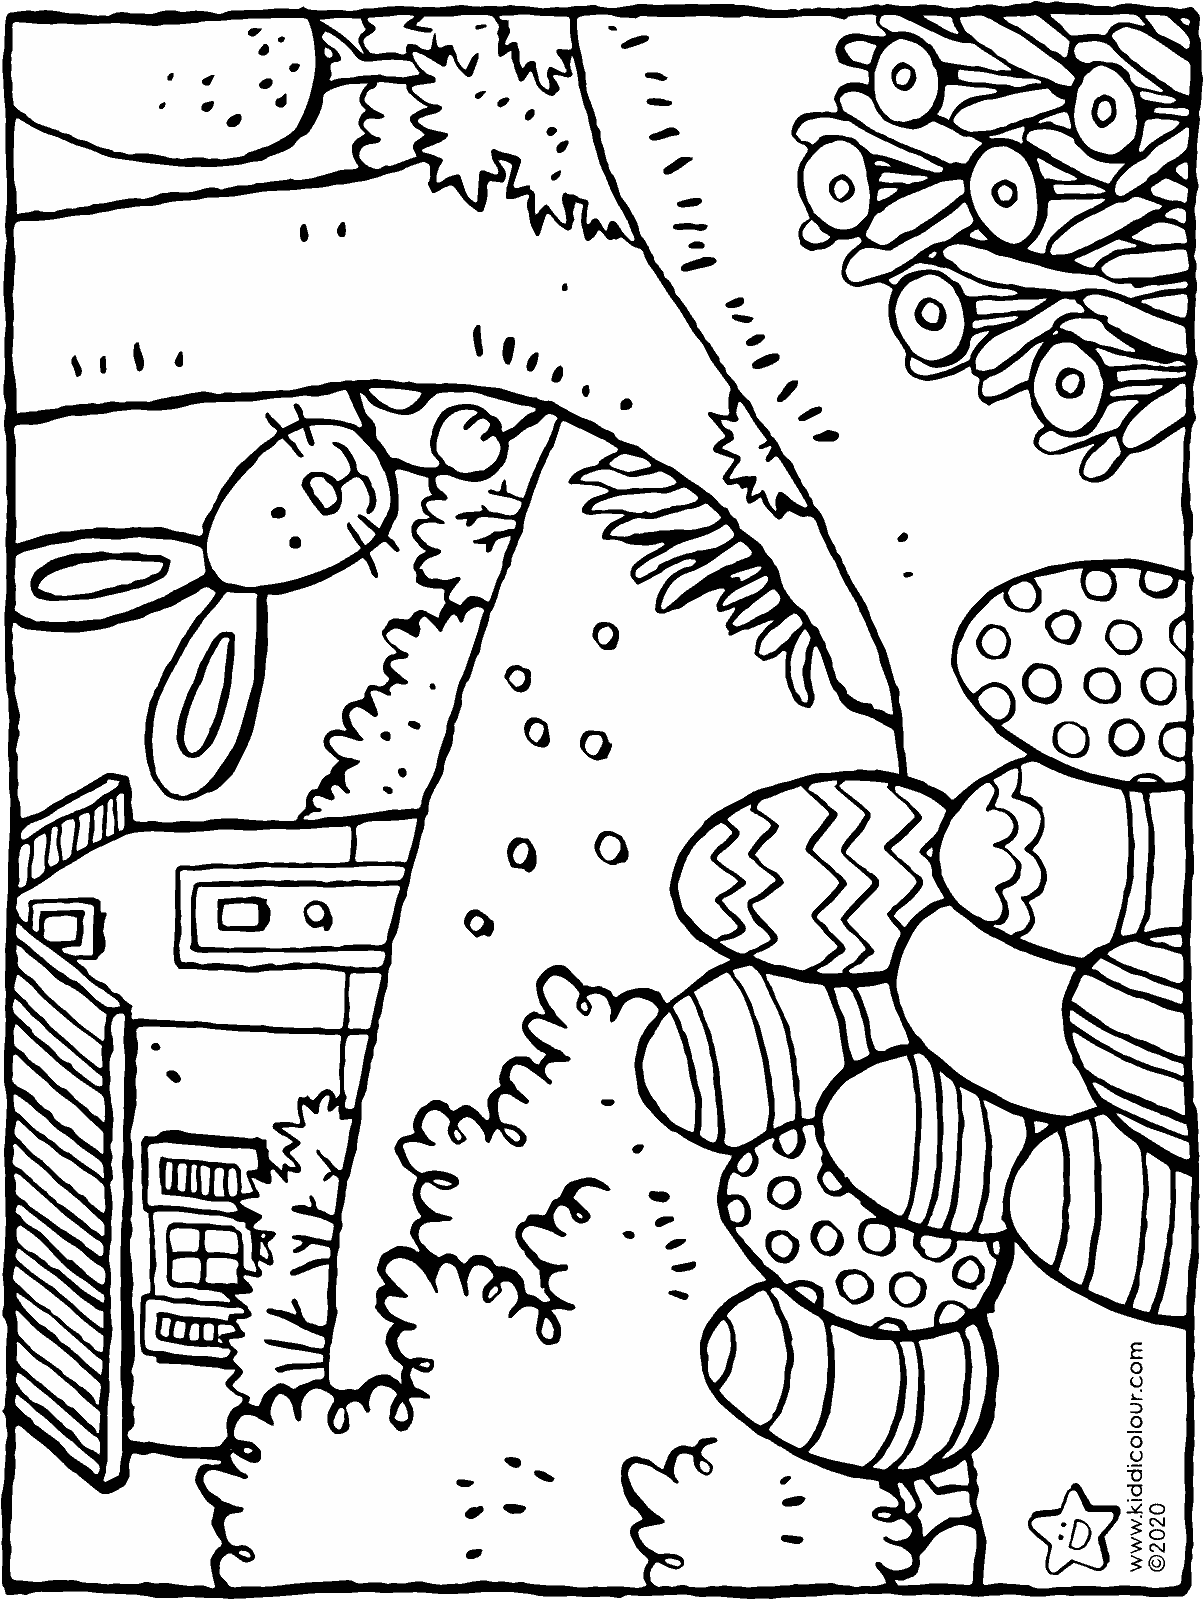 big Easter eggs from the Easter bunny colouring page drawing picture 01H